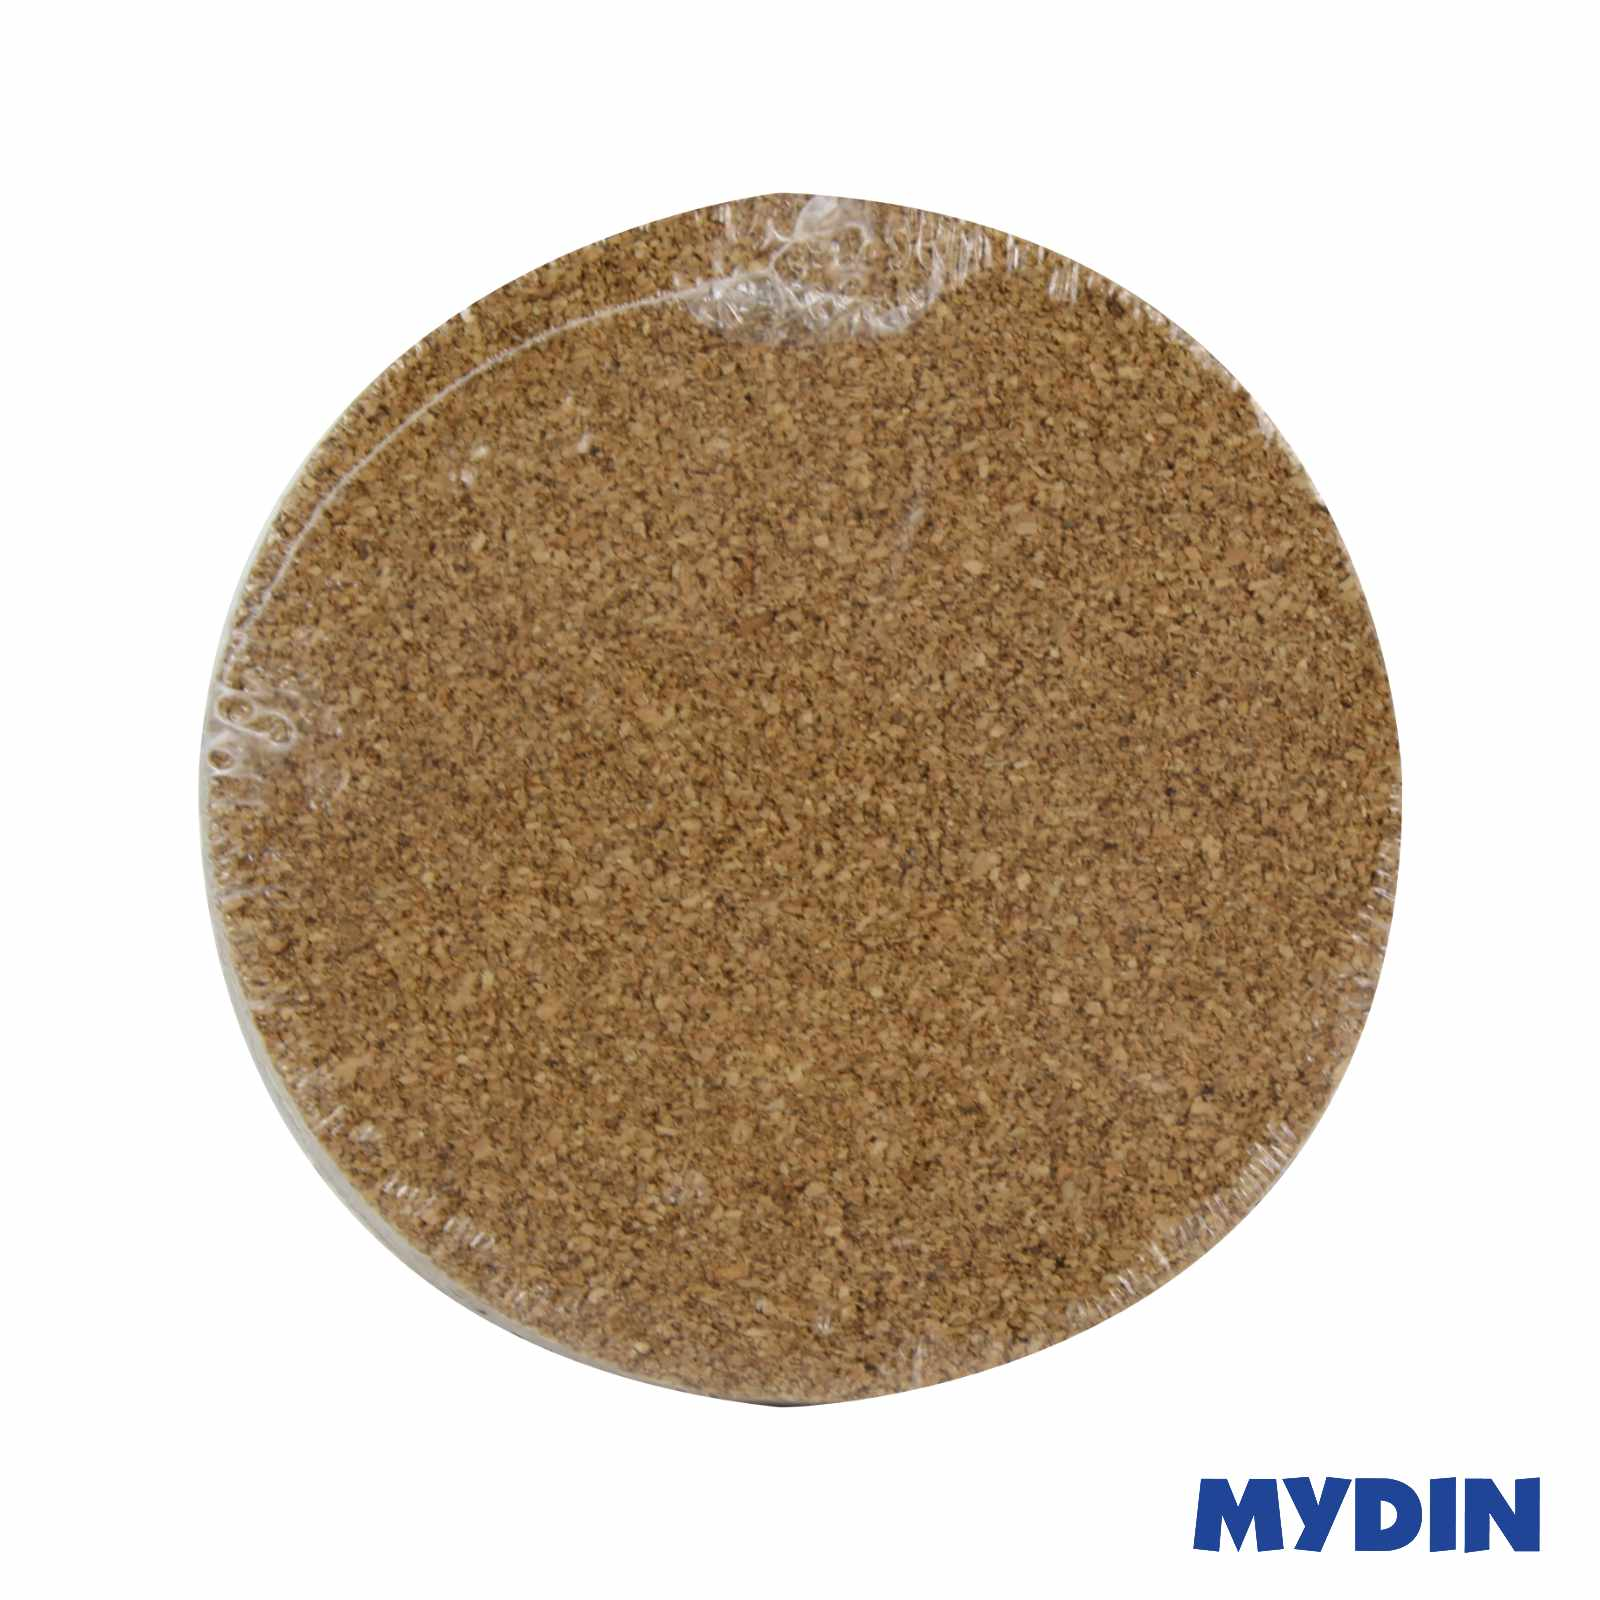 My Home Wooden Round Heat Pad (4 x 10cm) IKE-4IN1